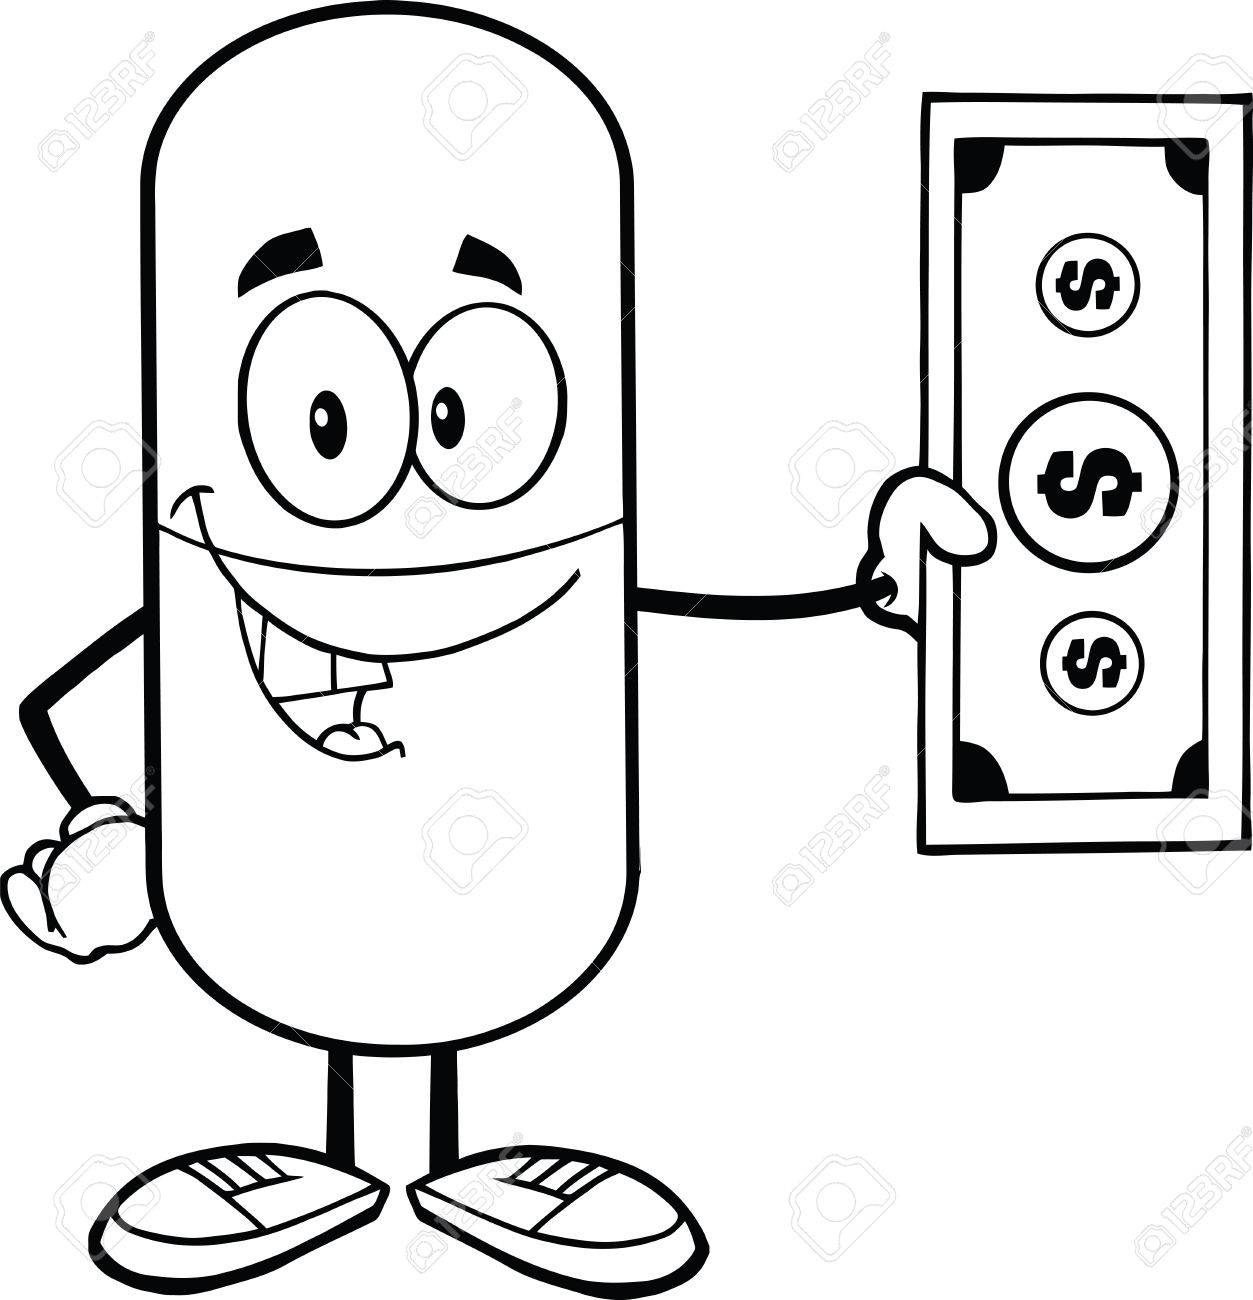 1253x1300 Black And White Pill Capsule Cartoon Character Showing A Dollar